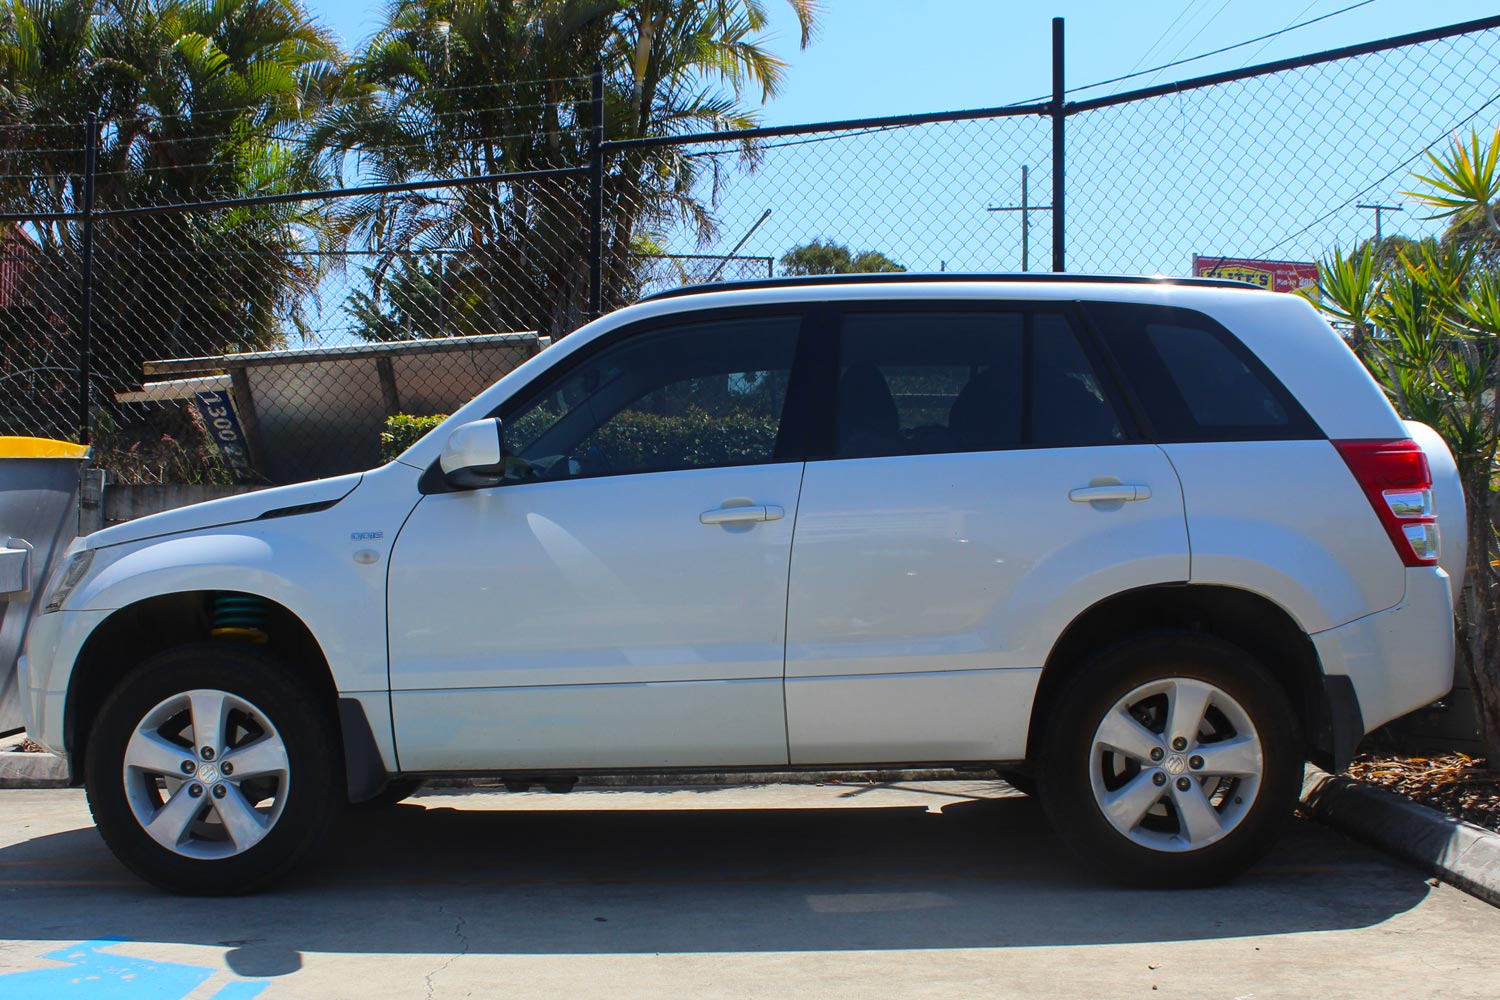 Left side view of a white Suzuki Grand Vitara after being fitted with a 40mm Dobinson lift kit